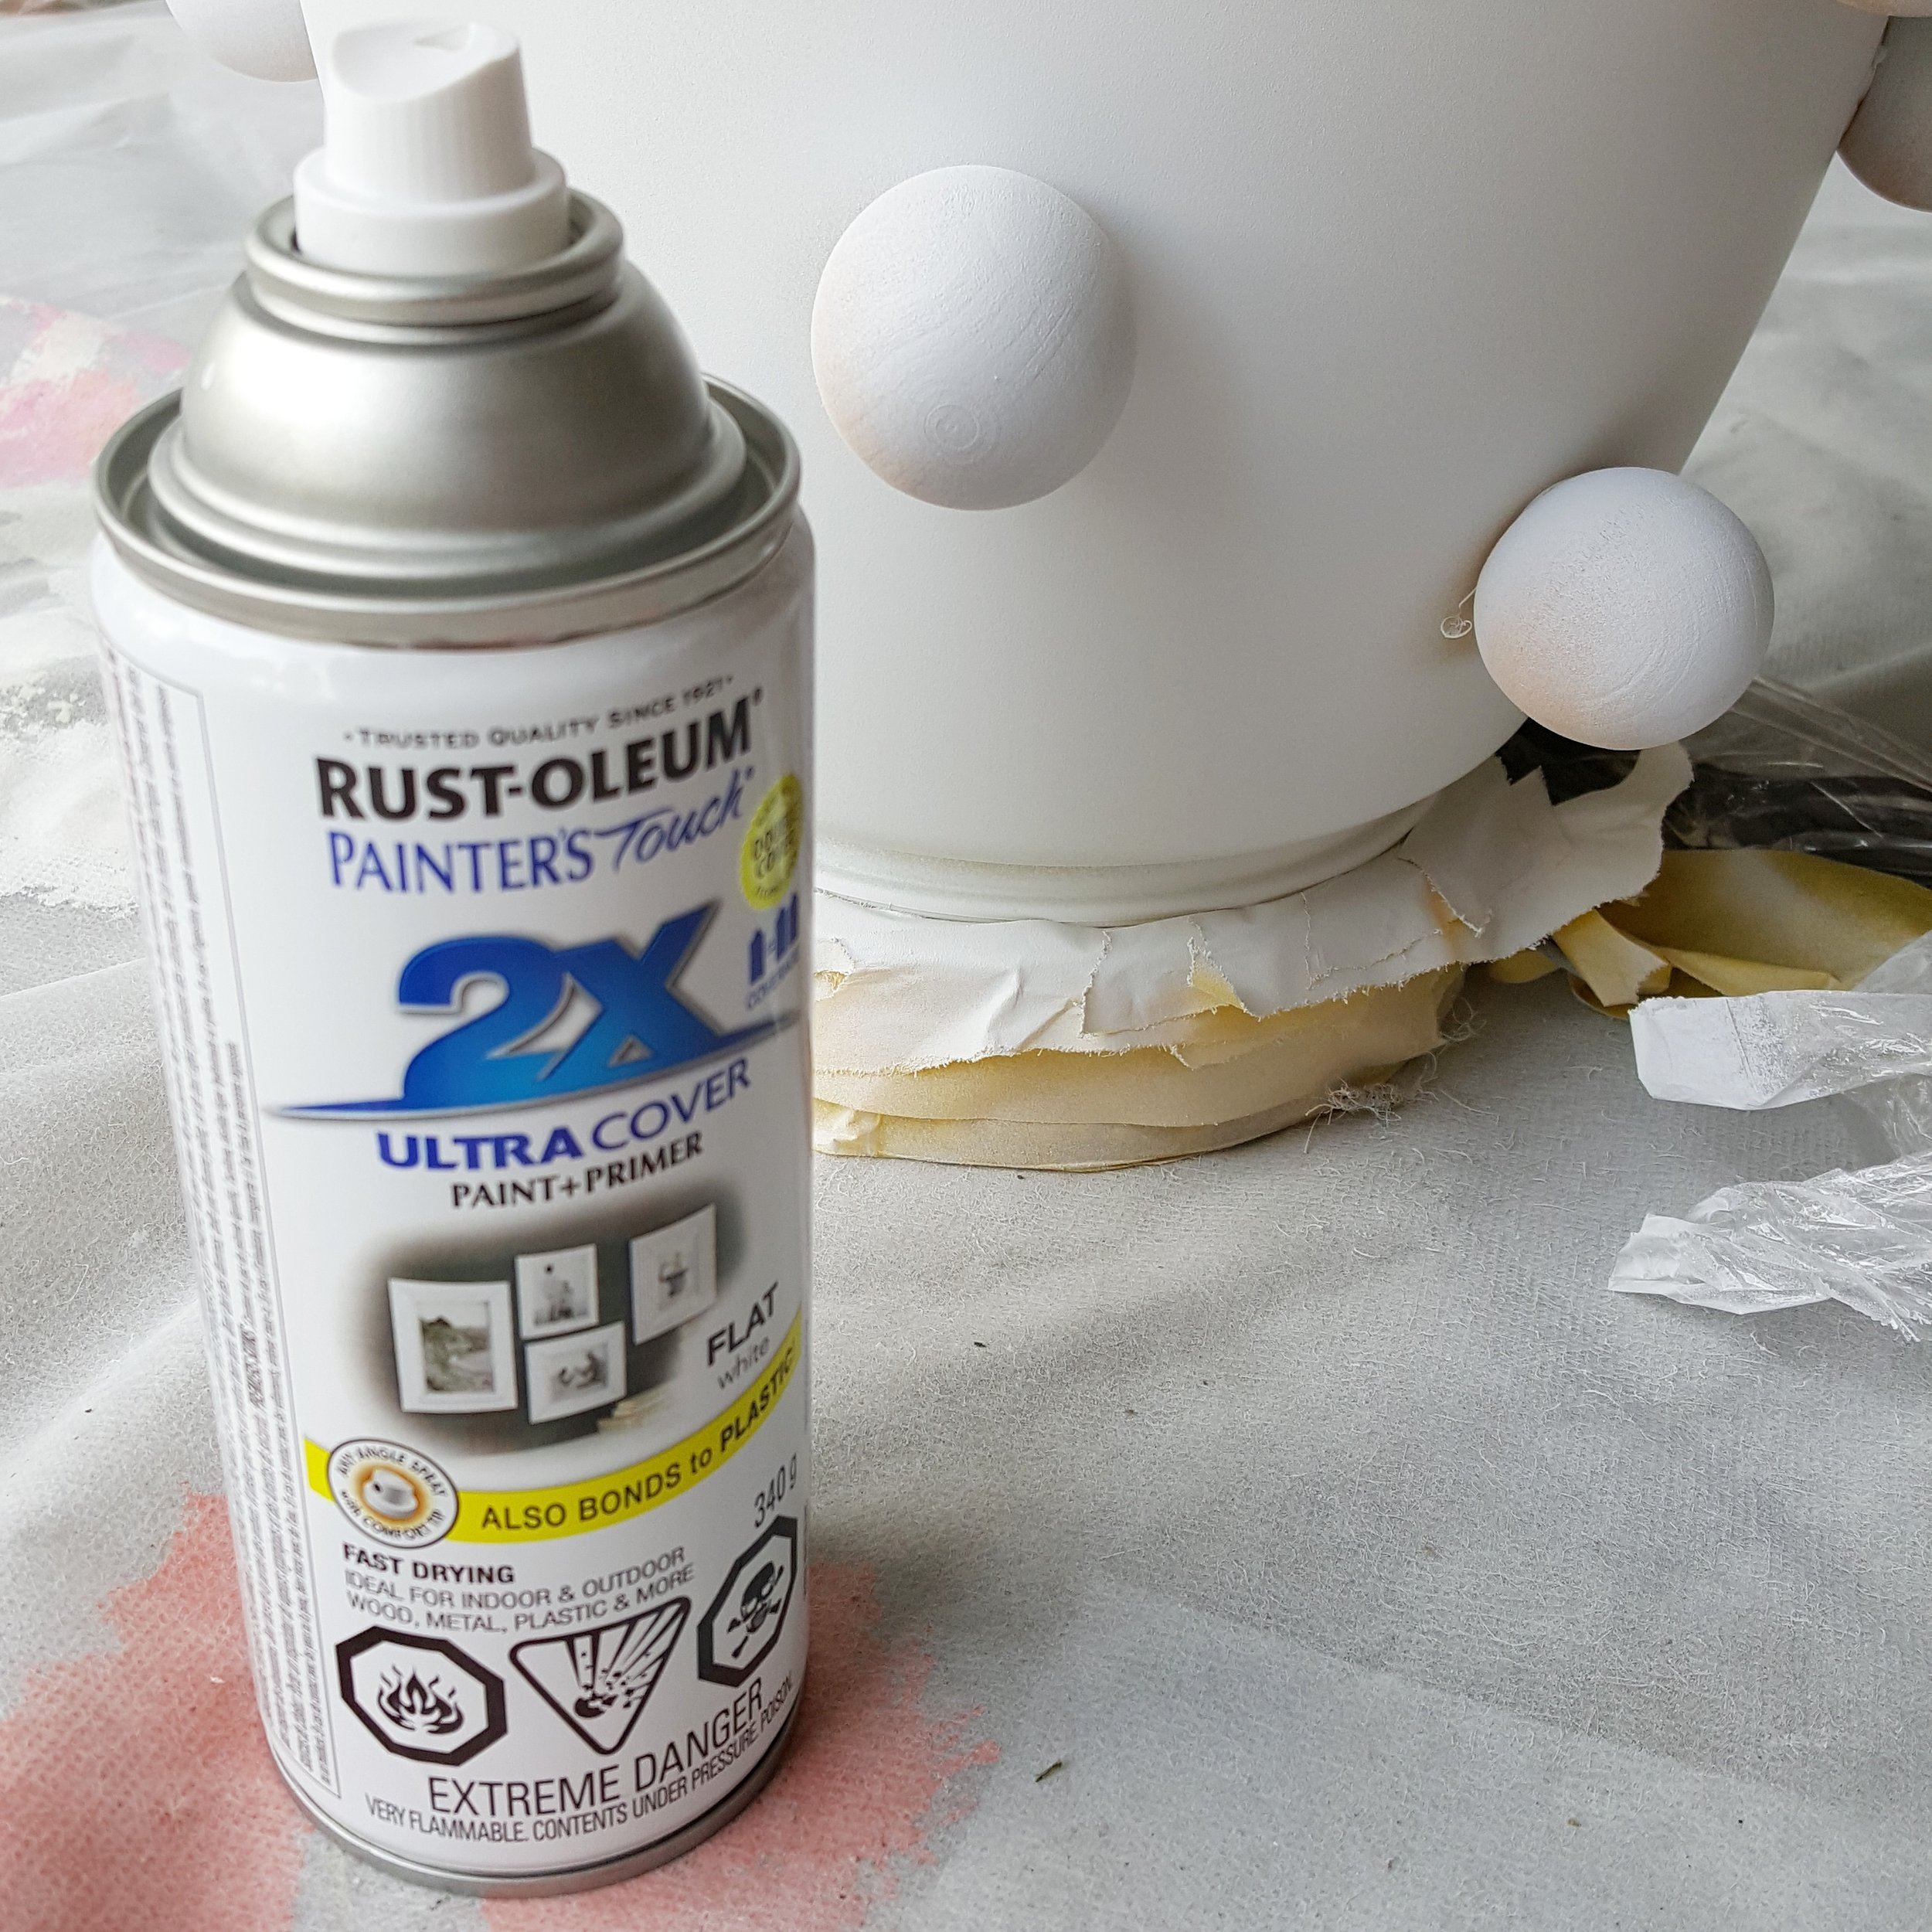 Step 5: Apply a few light coats of flat white spray paint in a well ventilated area.